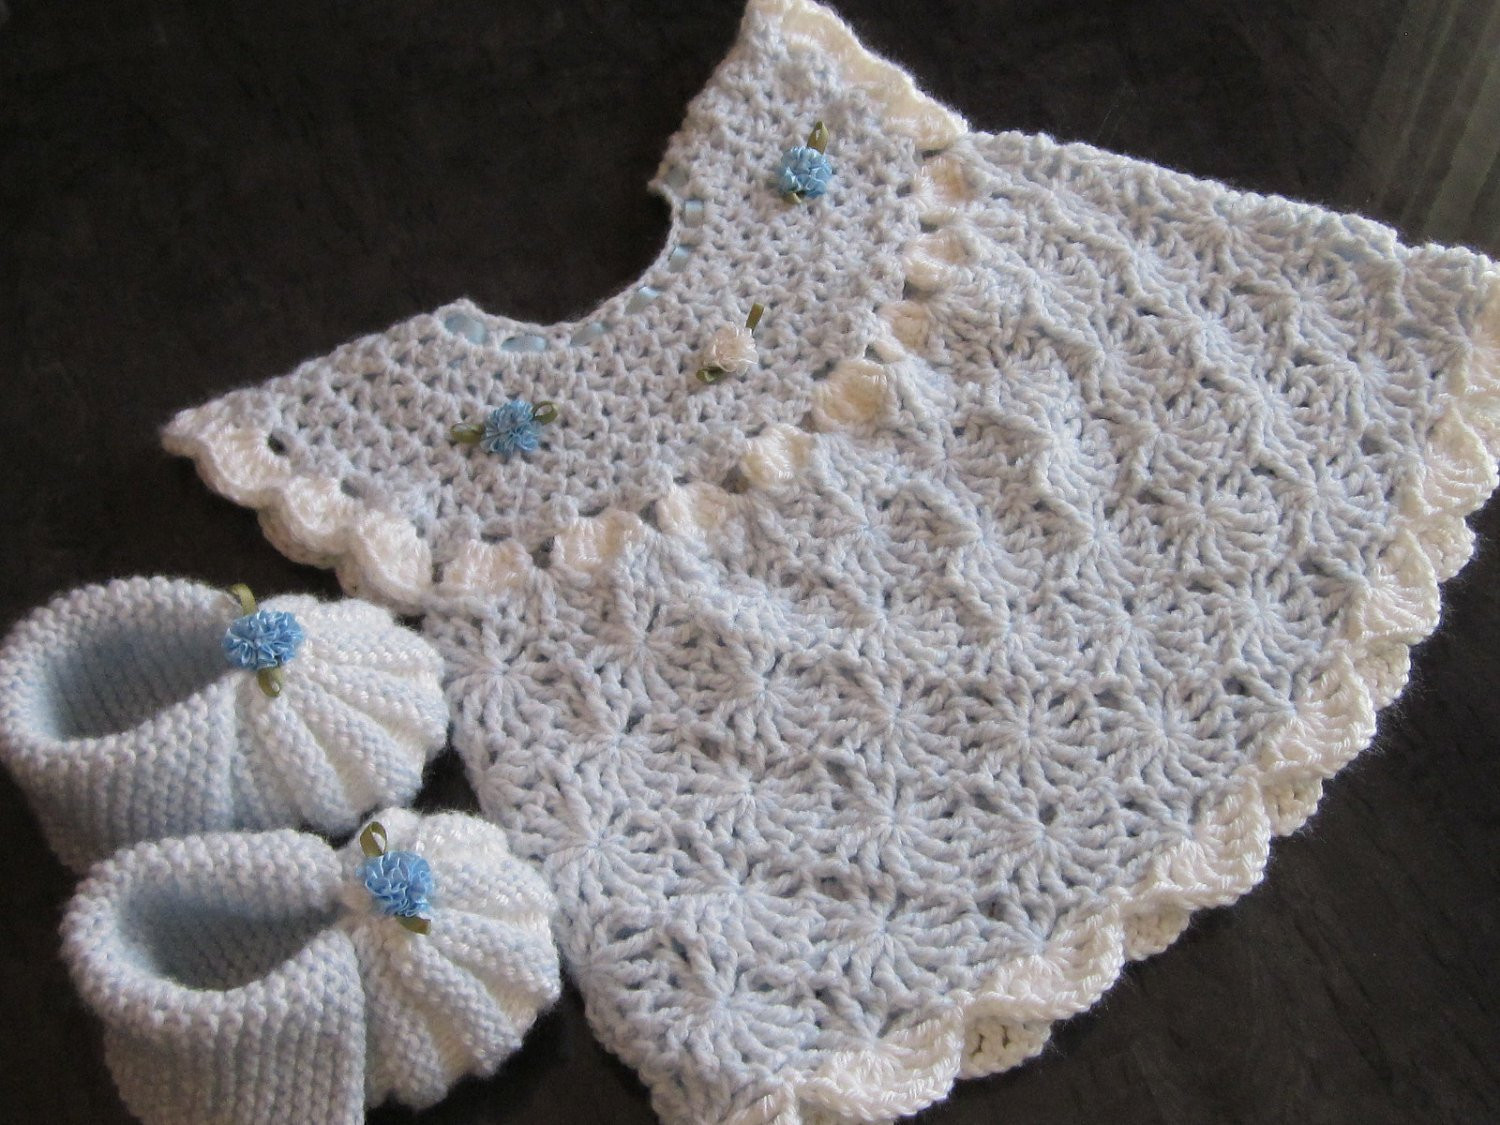 Crochet Baby Set Inspirational Handmade Baby Crochet Dress and Booties Set 0 6 by Of Charming 49 Pics Crochet Baby Set